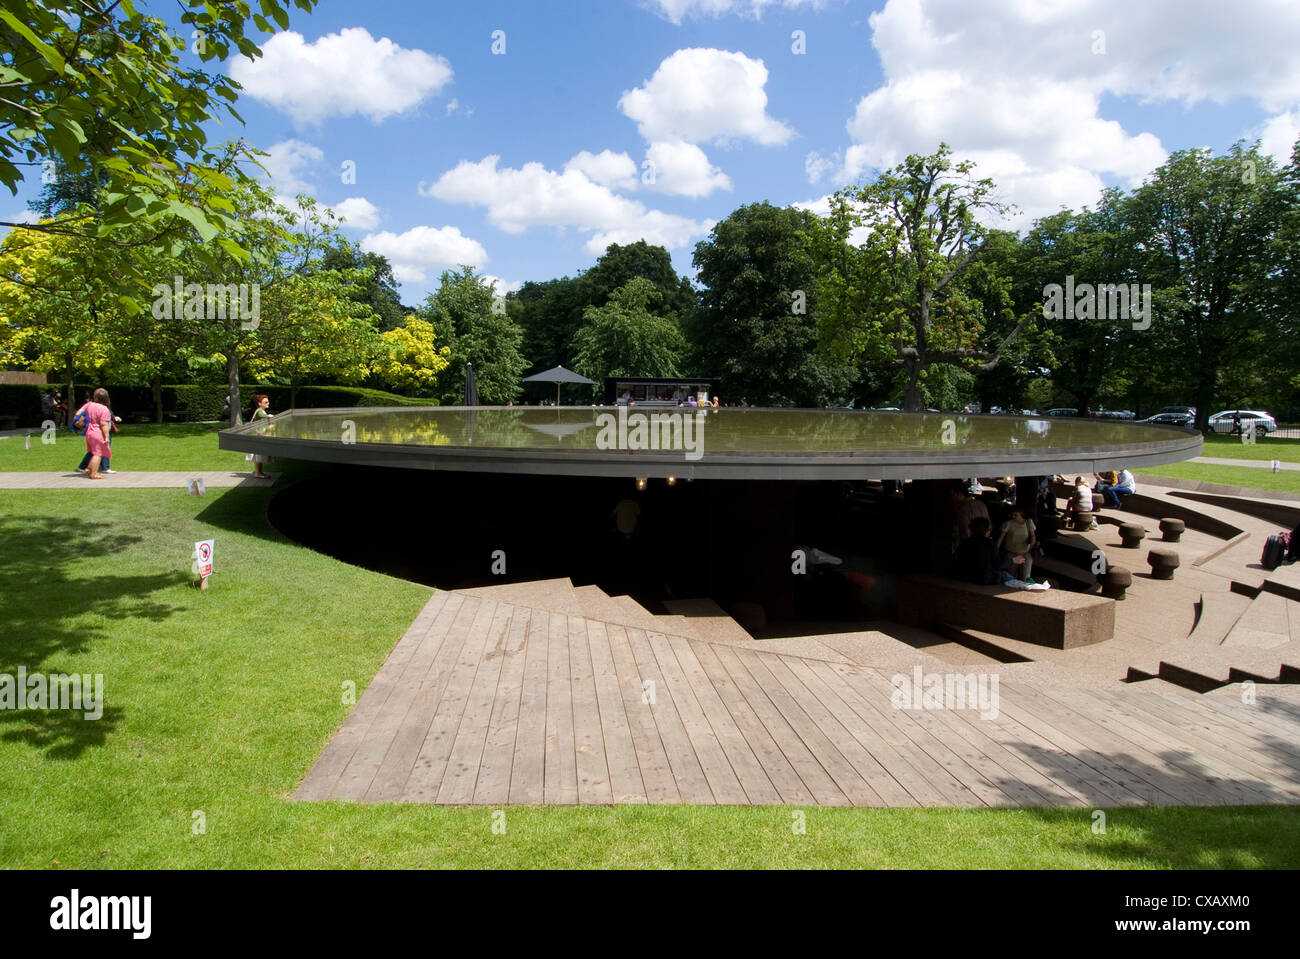 The 2012 Serpentine Gallery pavilion by Herzog, de Meuron and Ai Weiwei, Serpentine Gallery, Kensington Gardens, - Stock Image